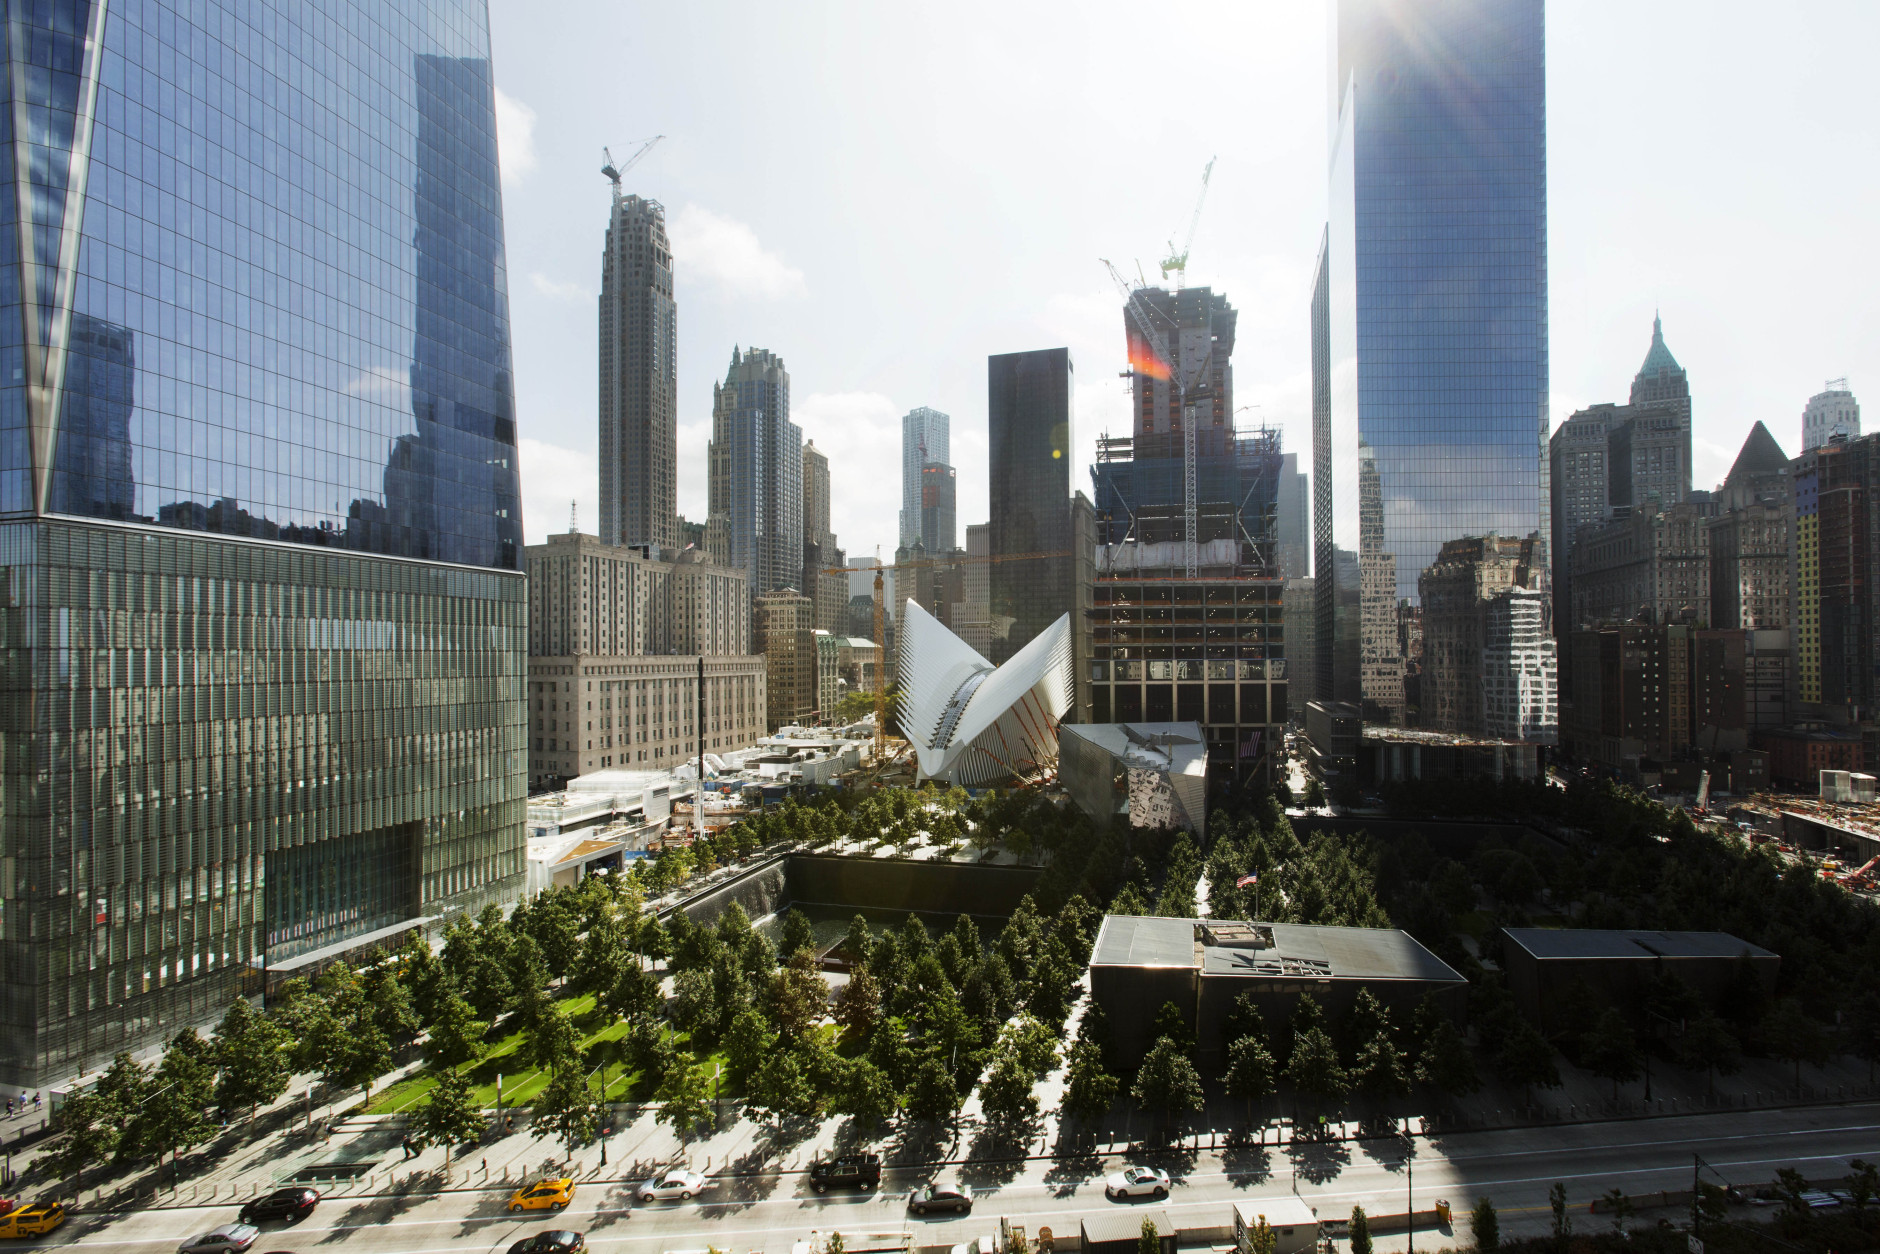 This Wednesday, Sept. 9, 2015 photo shows the National September 11 Memorial and Museum, center foreground, surrounded by One World Trade Center, left, the white v-shaped transportation hub, center, and 4 World Trade Center, the tall building at right, in New York. The building under construction at center right is 3 World Trade Center. Friday will mark the 14th anniversary of the Sept. 11 terrorist attacks on the United States. (AP Photo/Mark Lennihan)